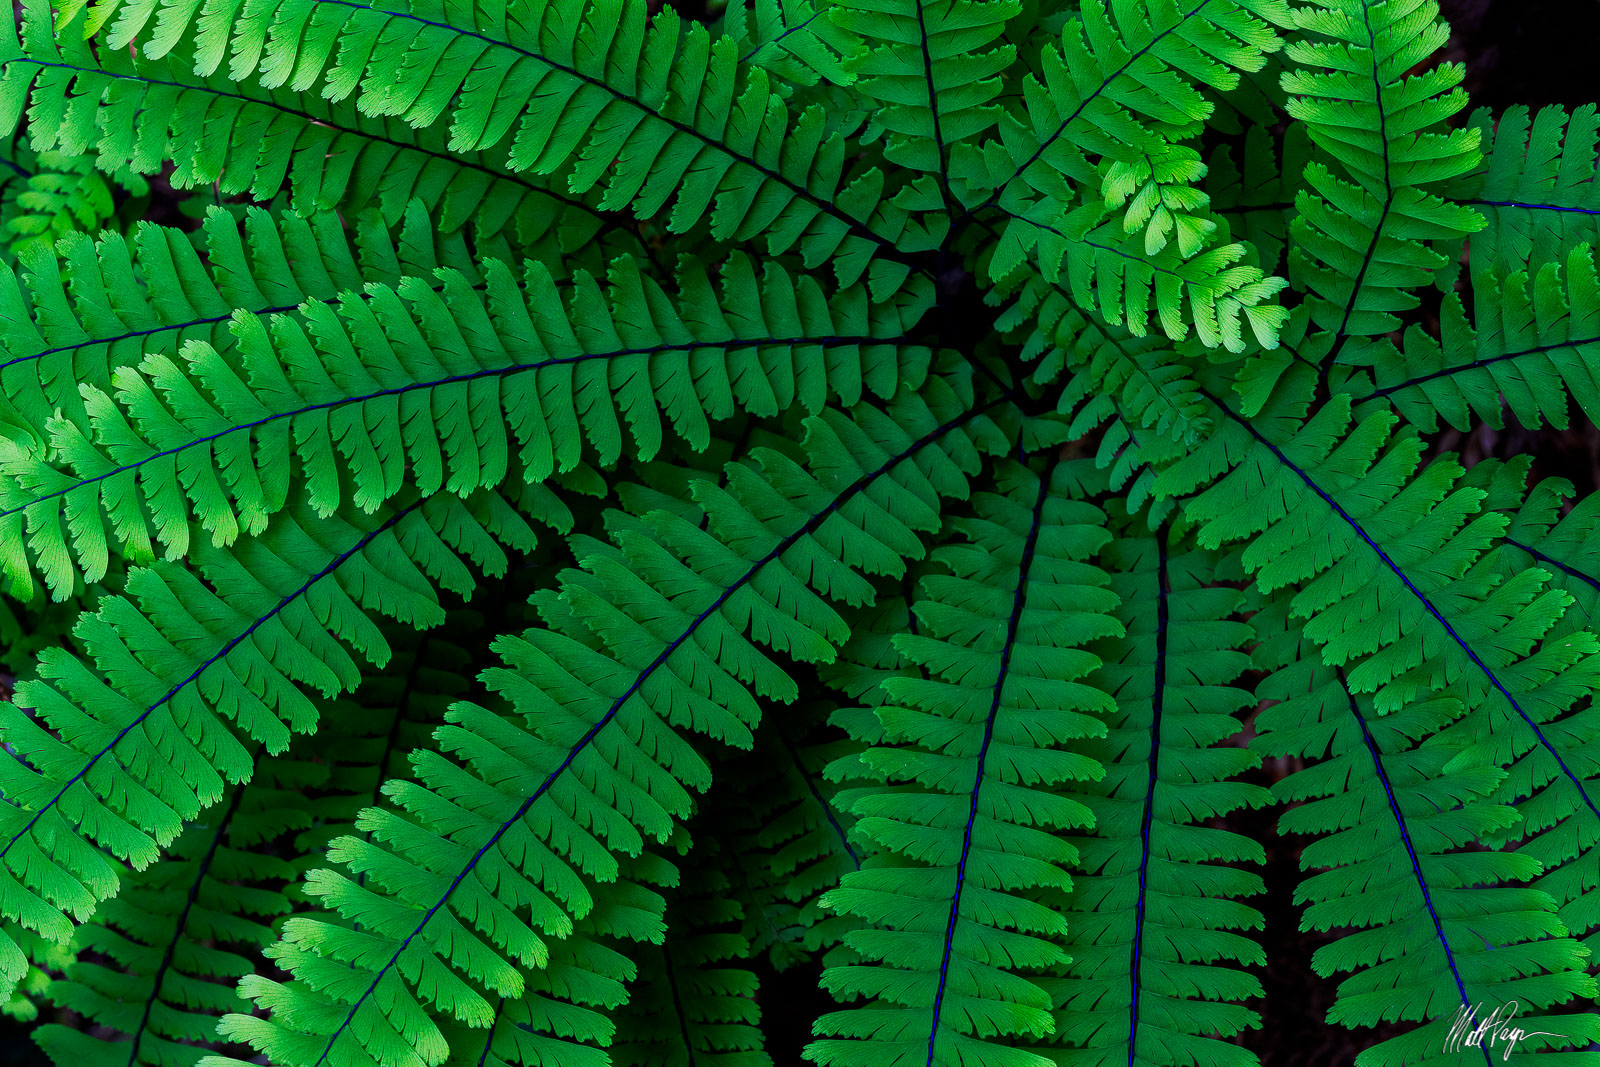 One of the plants that continually captivated me while hiking in the Redwoods forests of California was the Western Maidenhair...